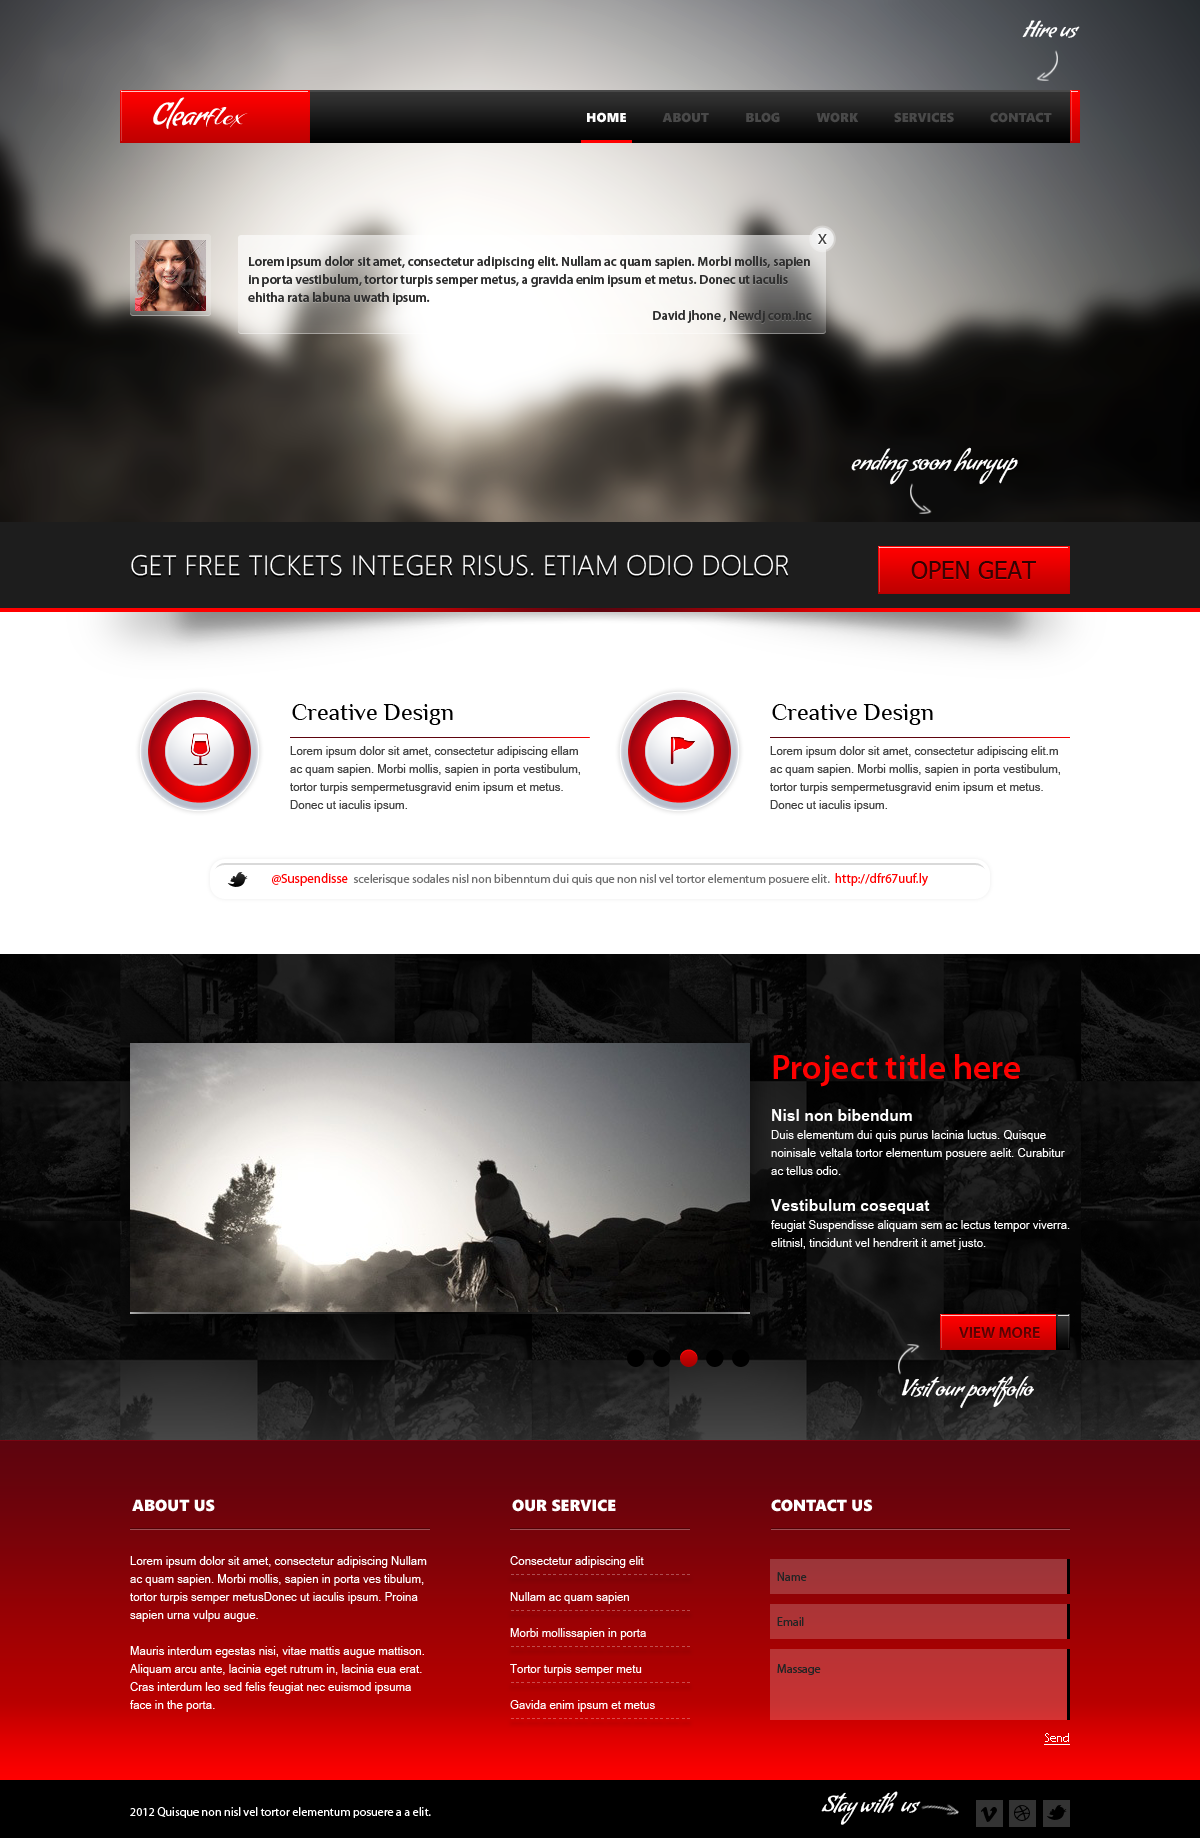 Clearflex PSD Templates - 01_Home page